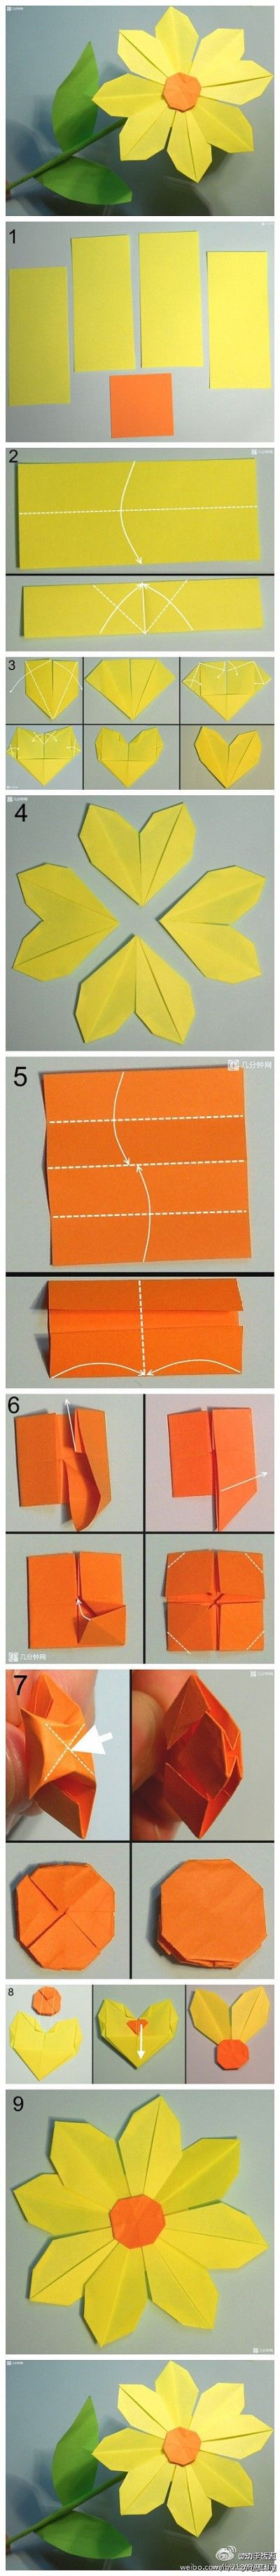 How to make pretty paper craft origami yellow flower step by step